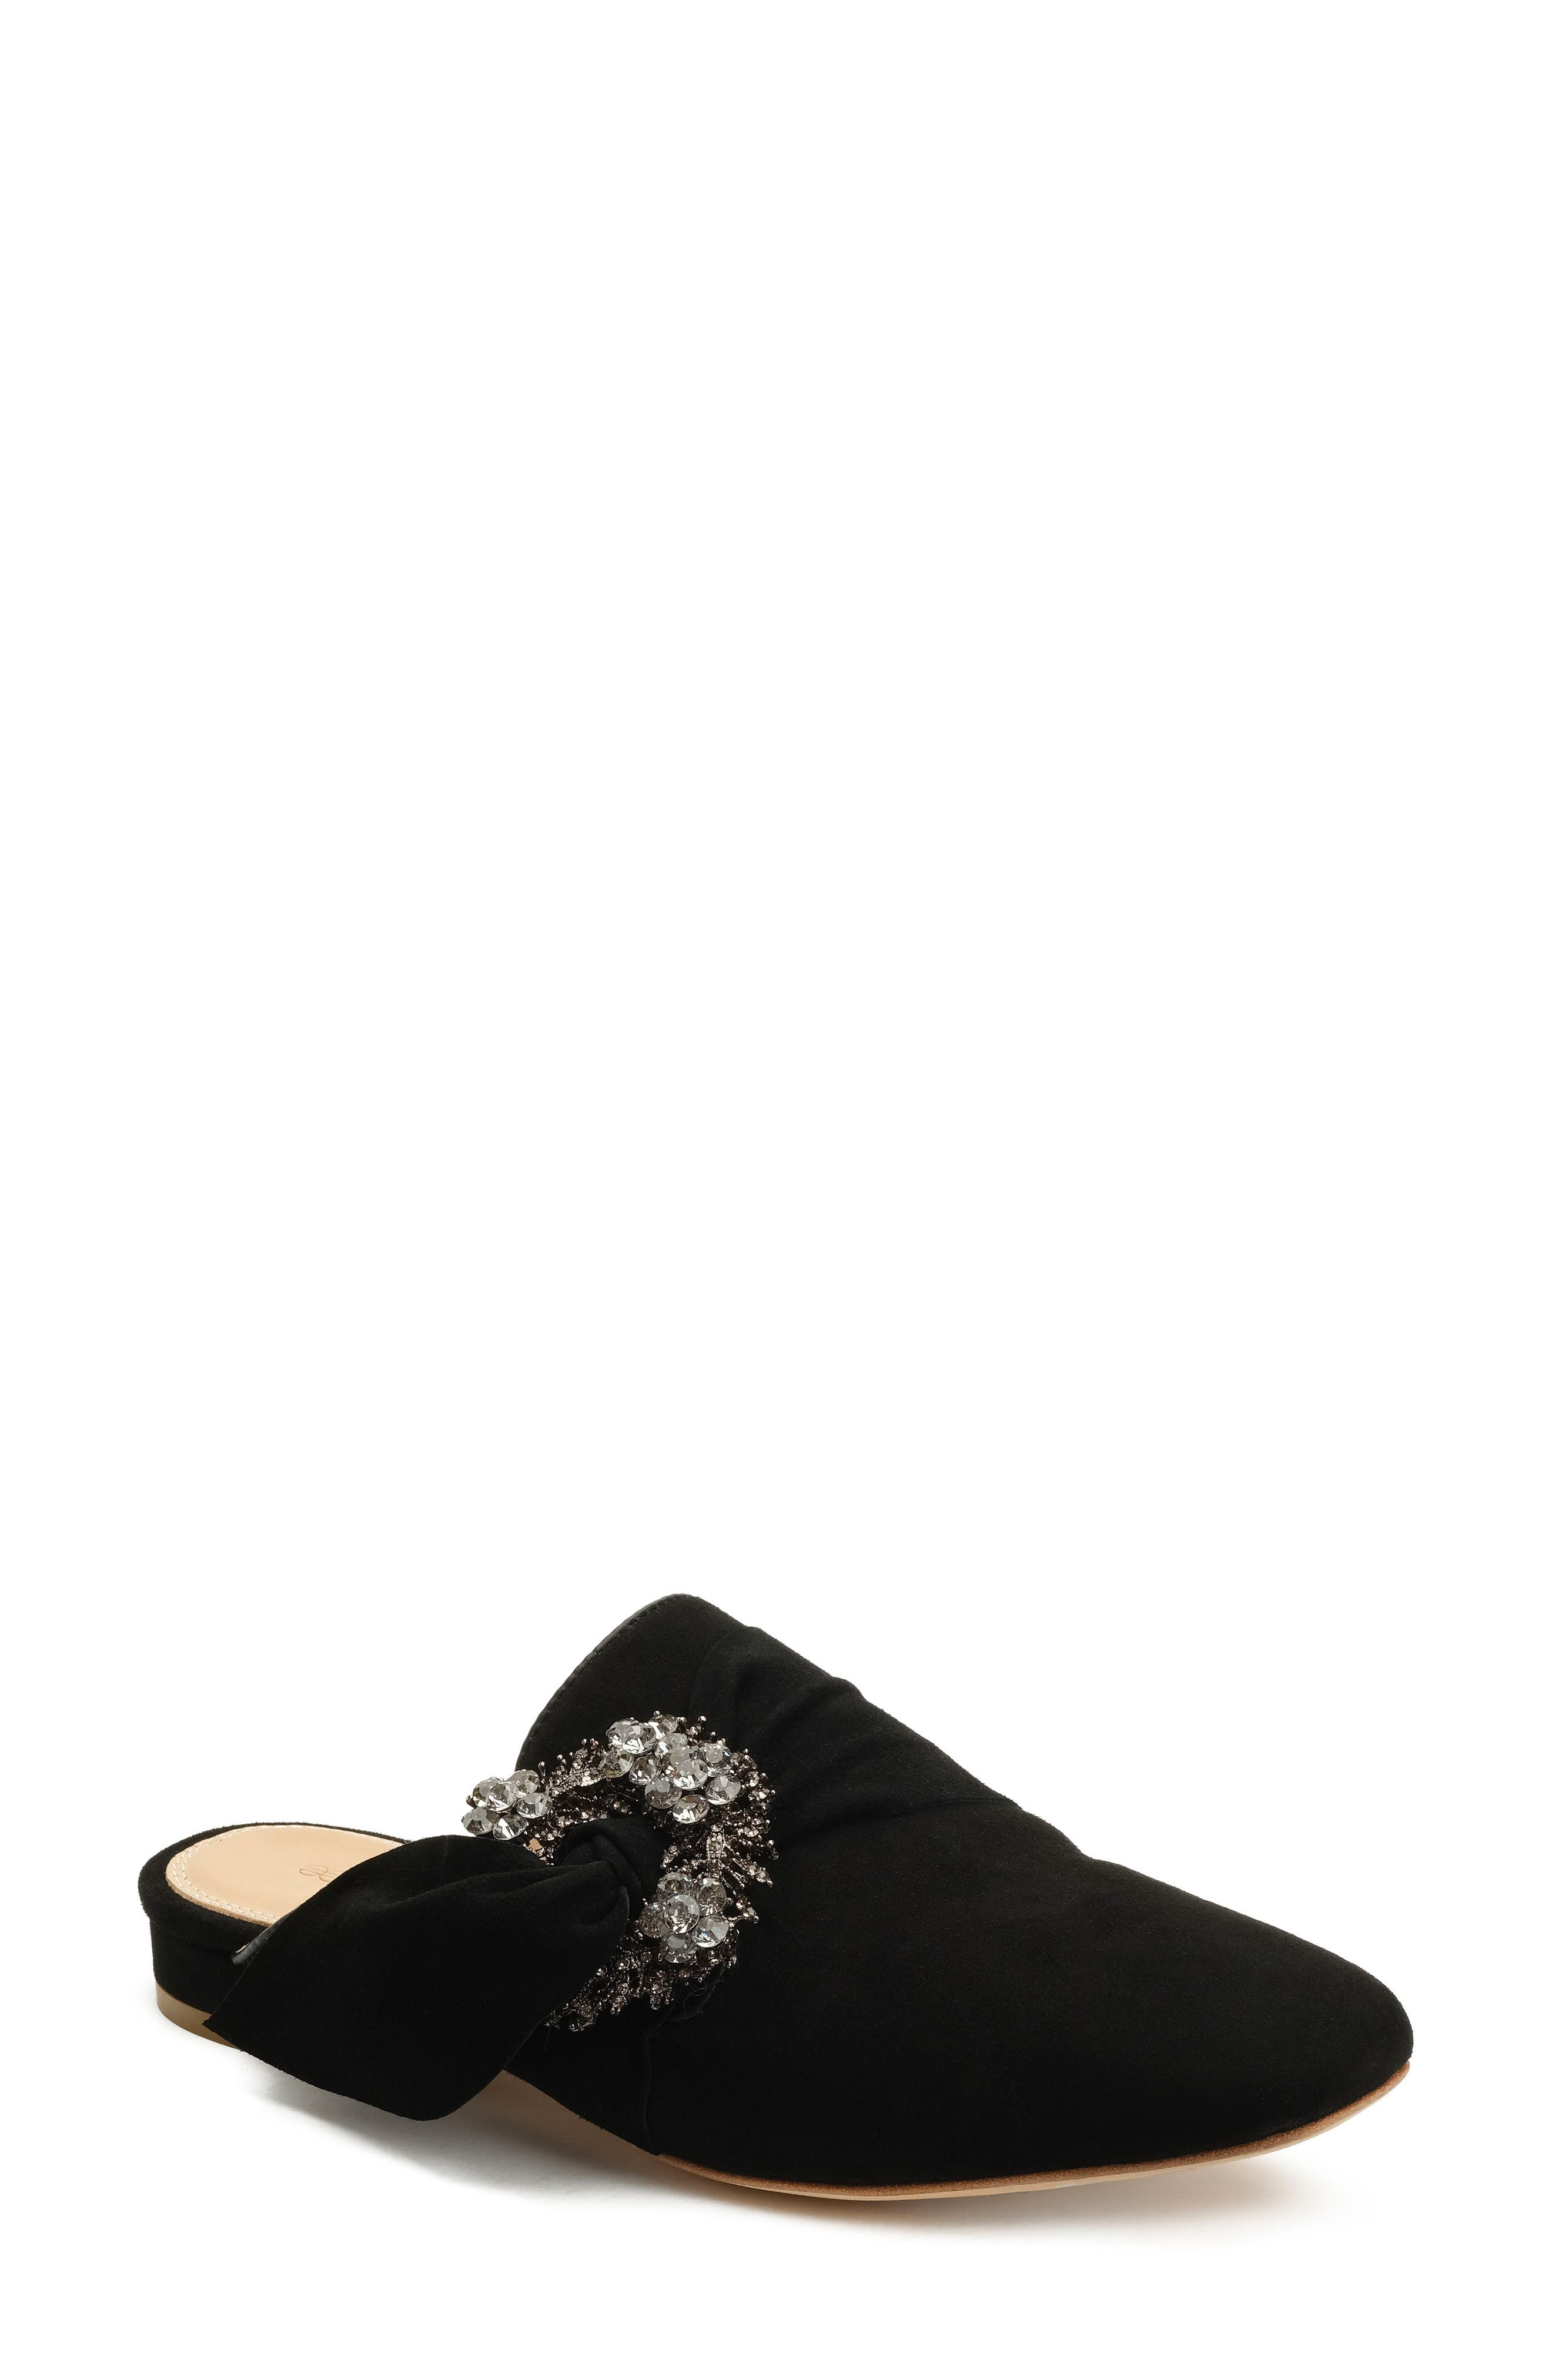 Laverne Tie Slide,                         Main,                         color, Black Suede